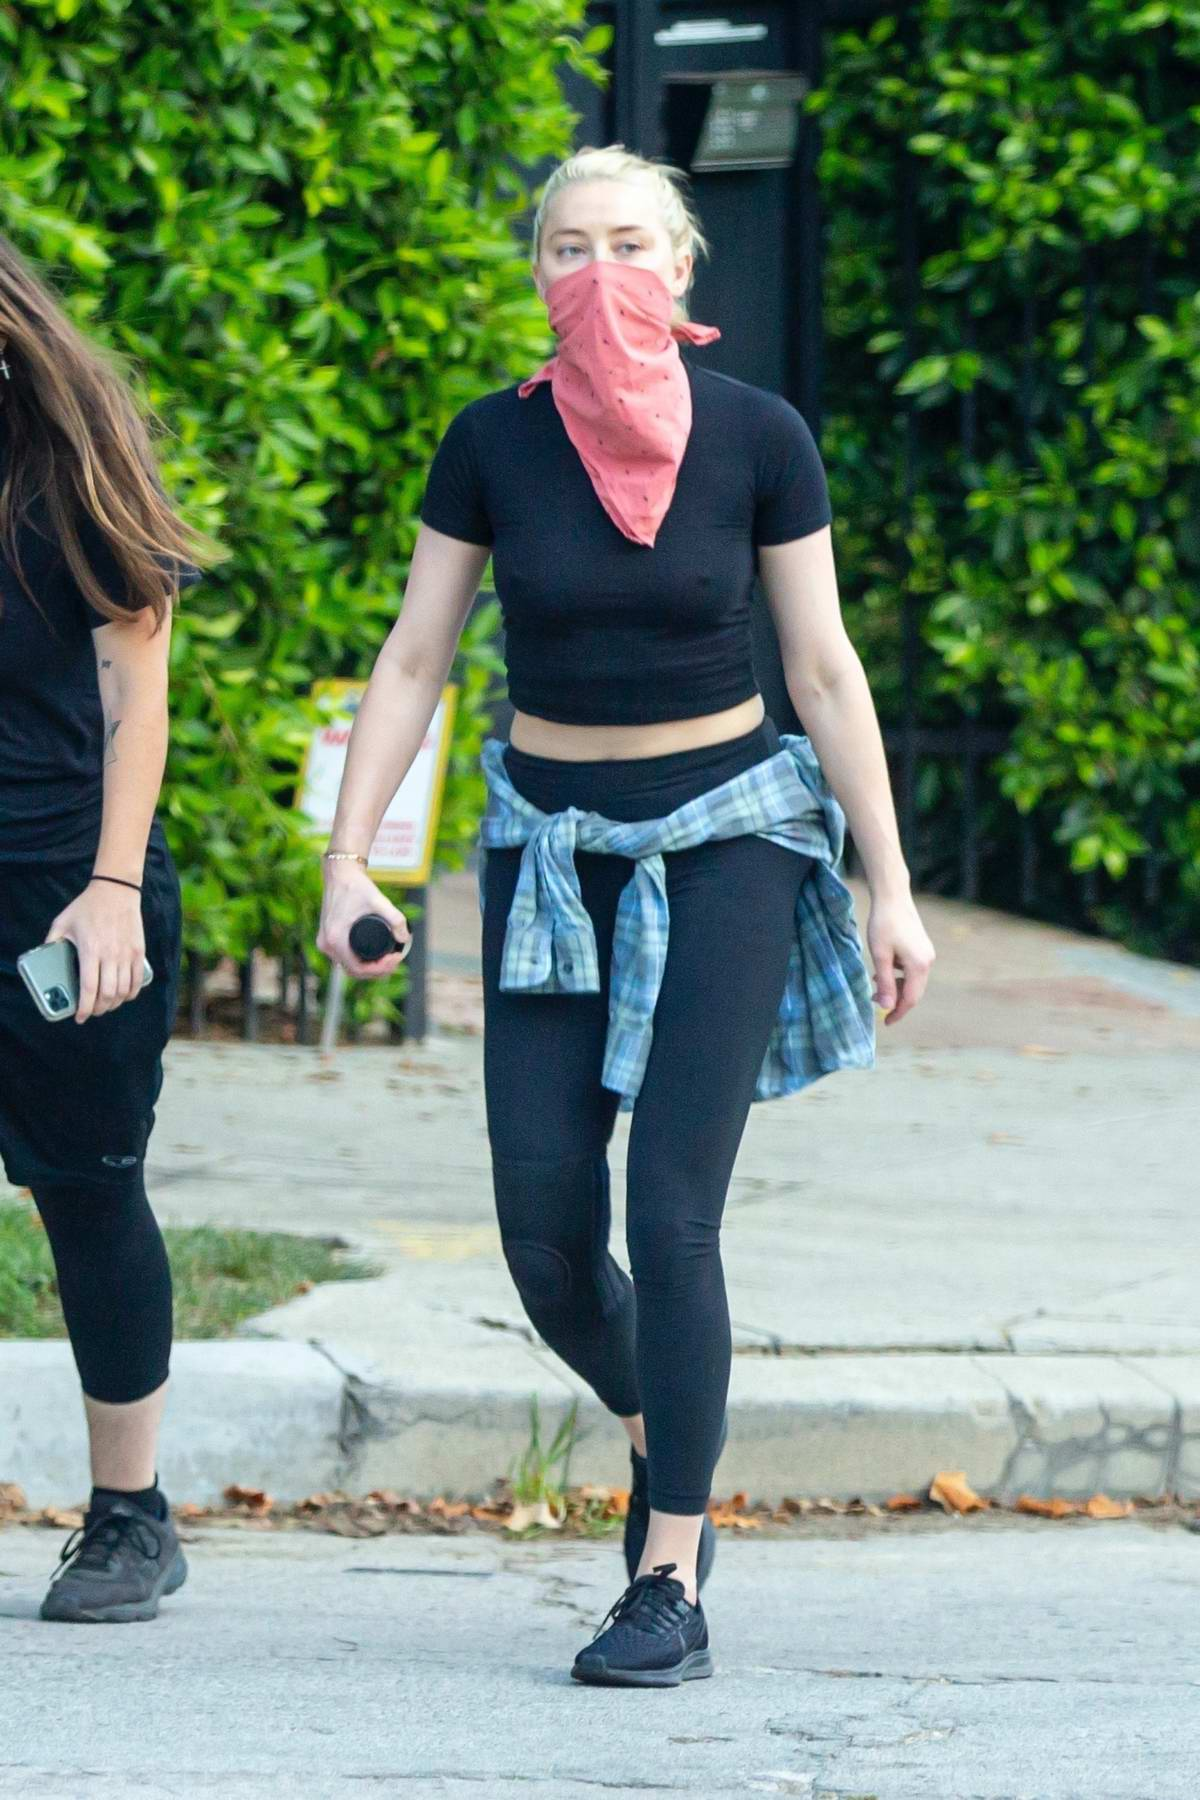 Amber Heard sports a black crop top and leggings during an afternoon hike with a friend at Griffith Park in Los Angeles